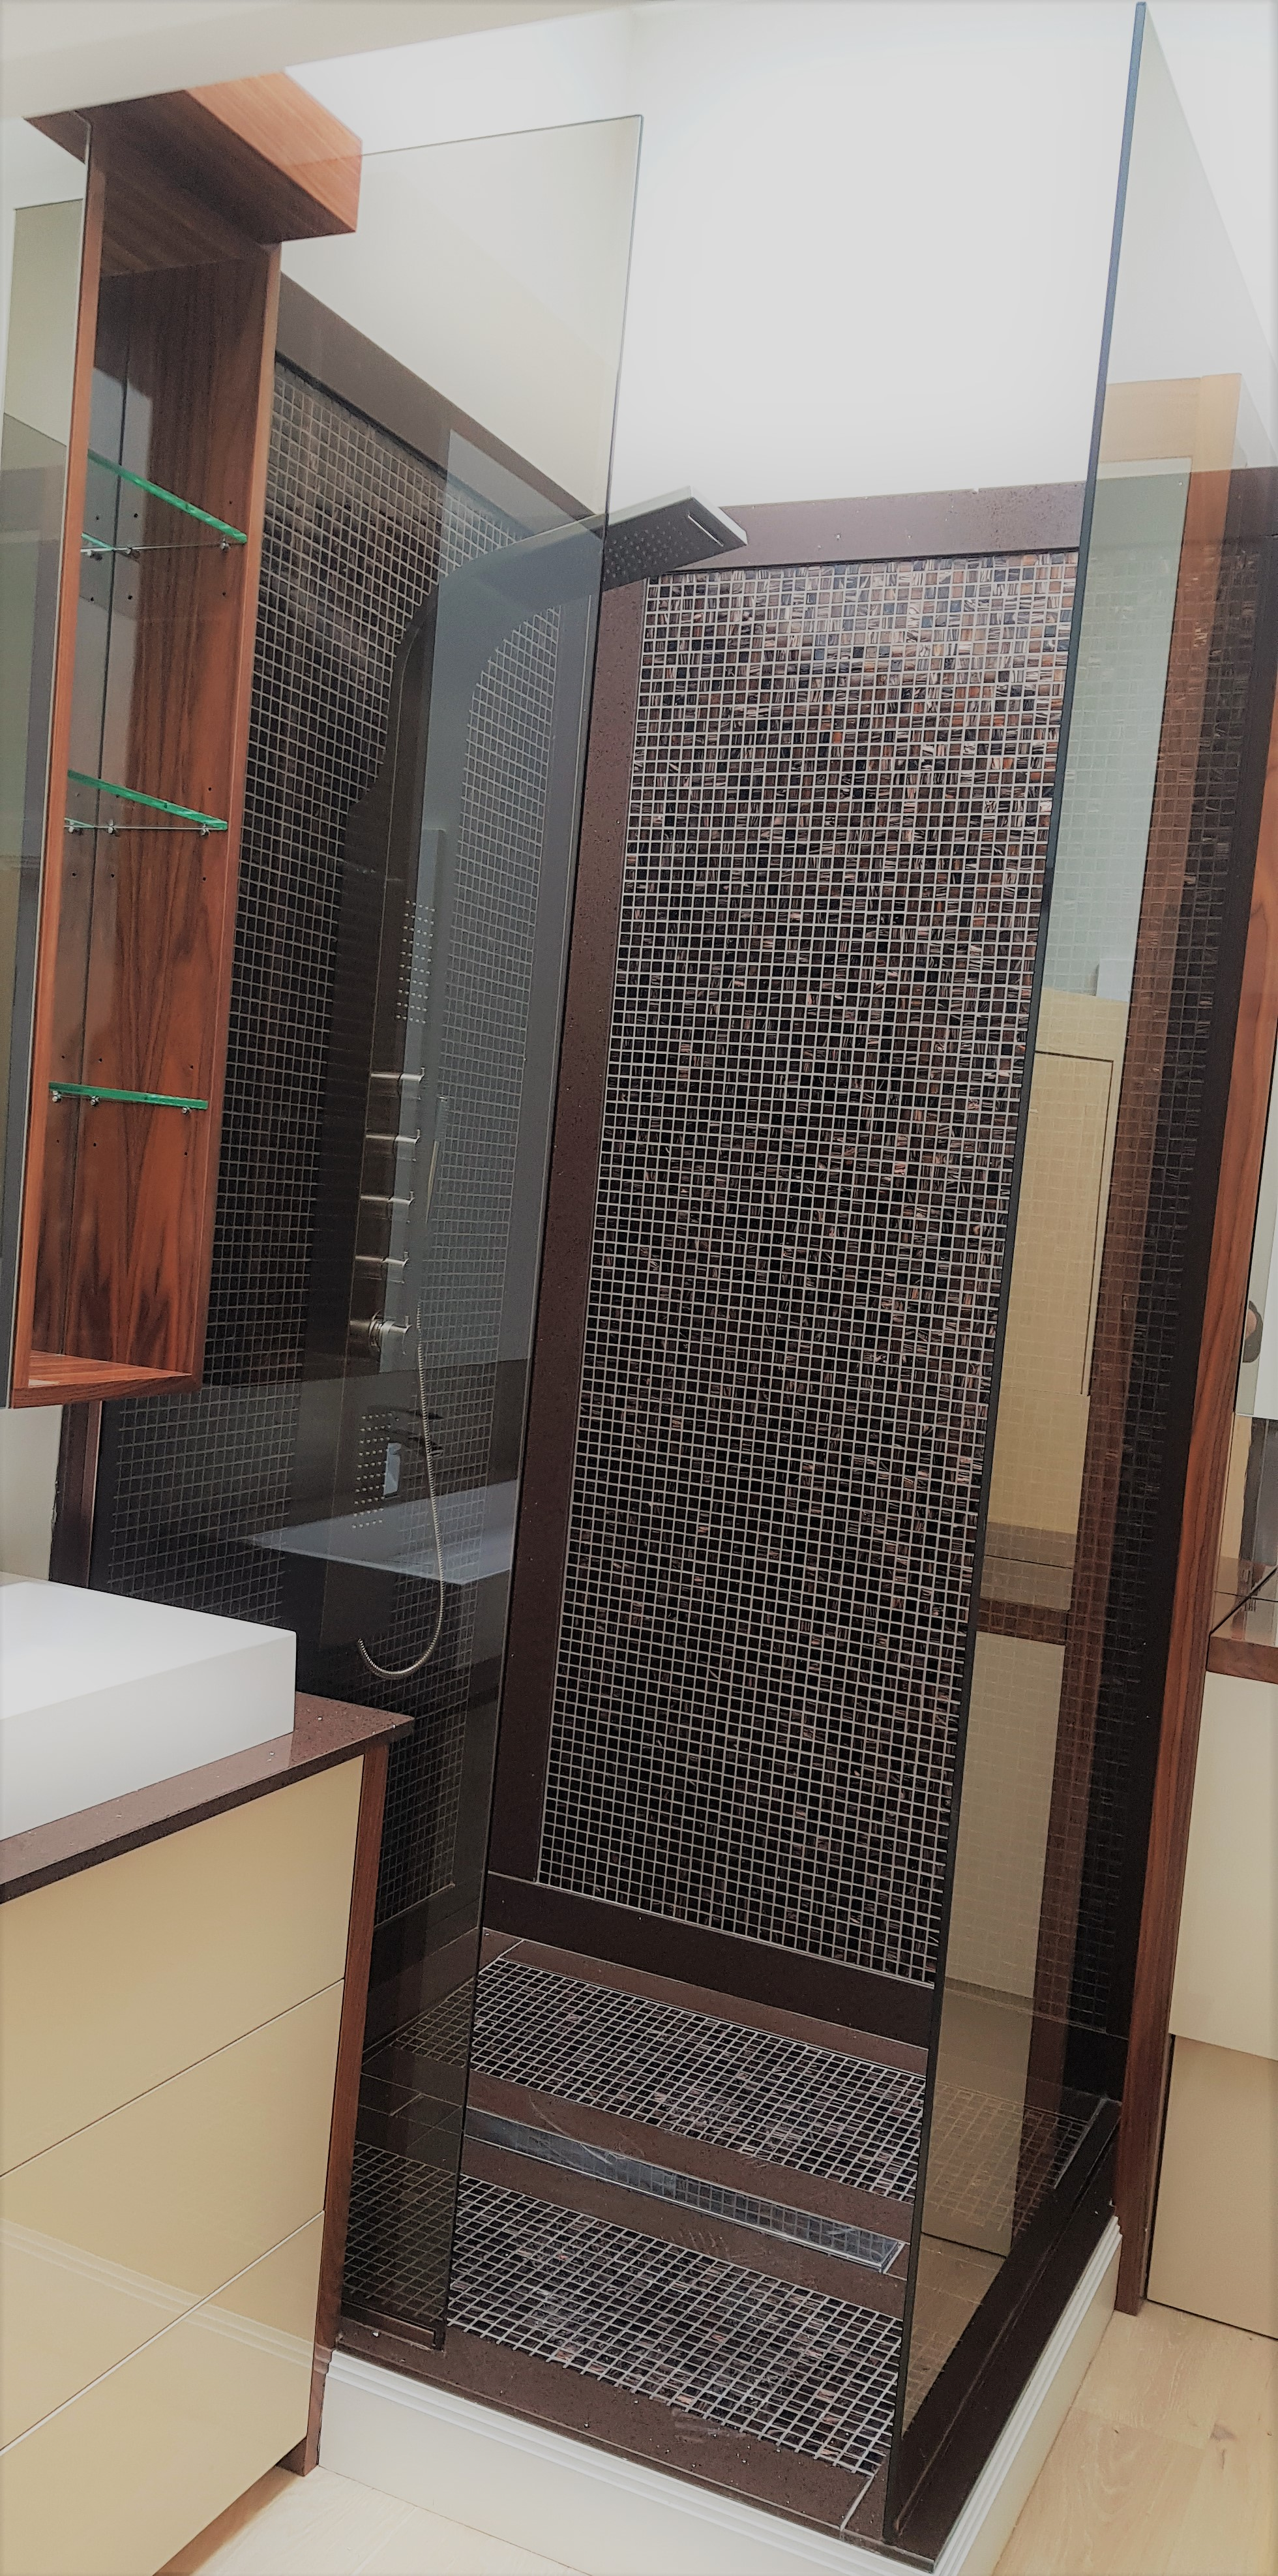 10mm Bronze tint glass for shower screens and wetrooms